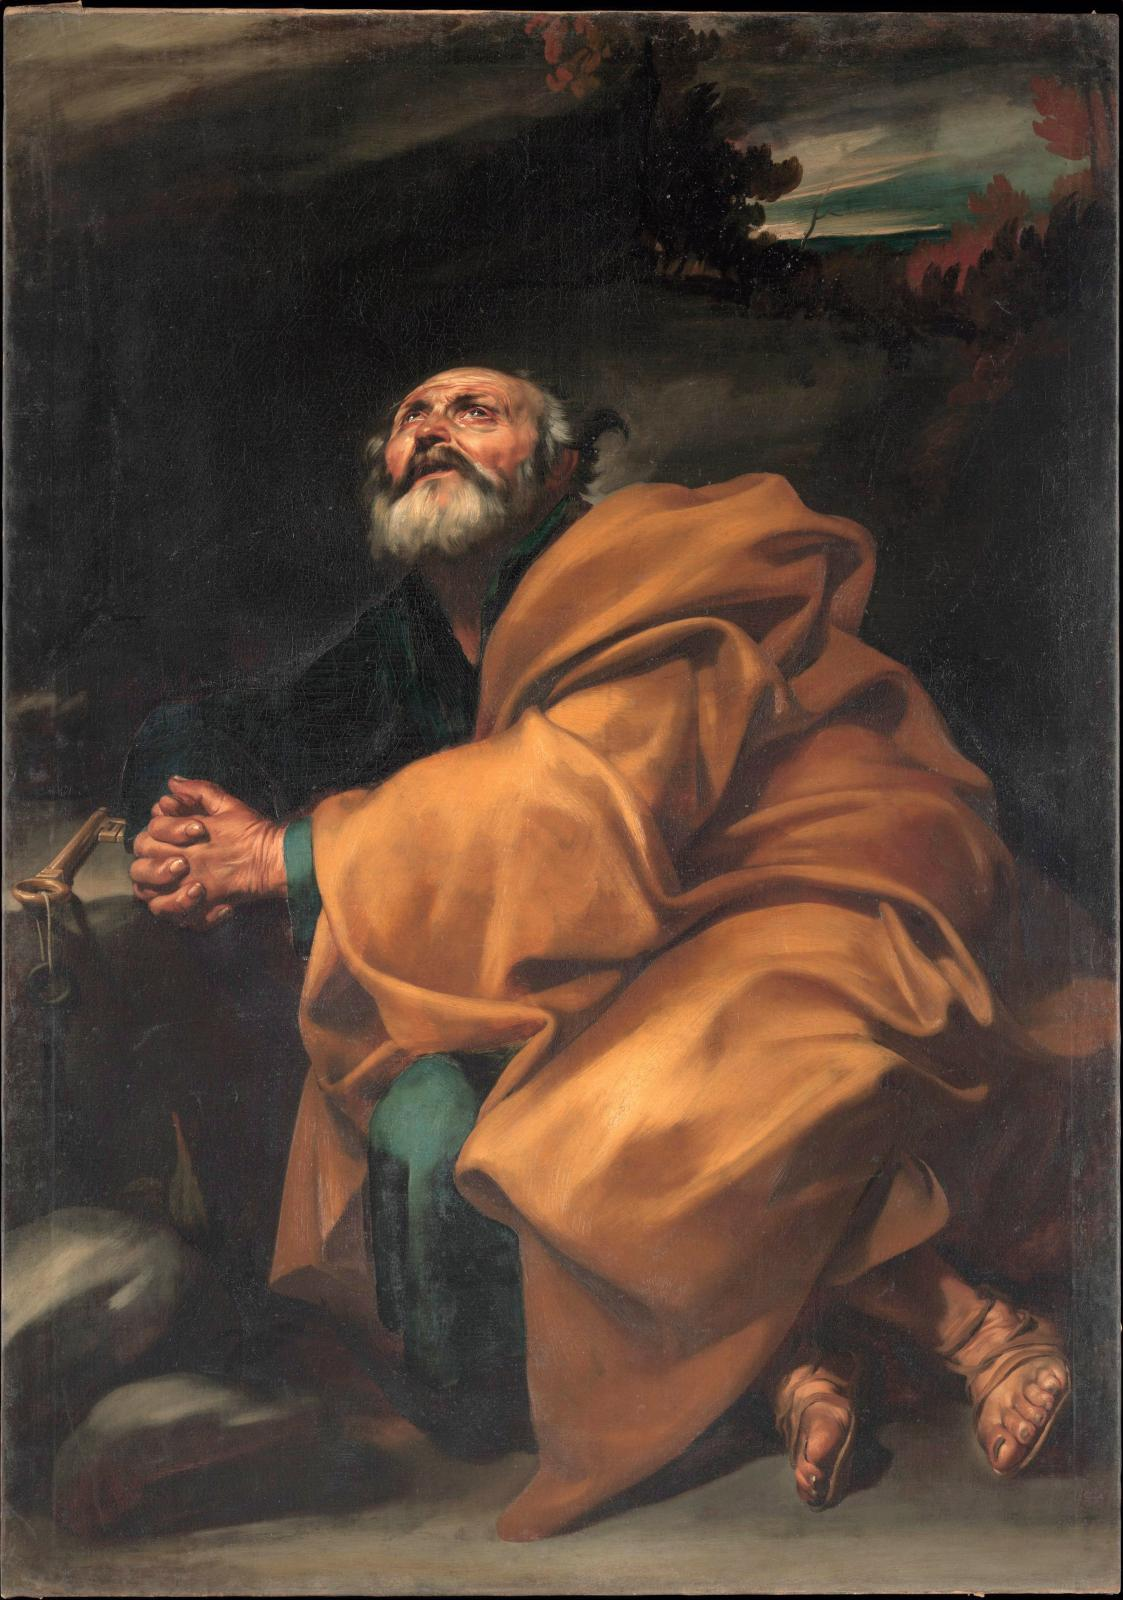 Jusepe de Ribera, Les Larmes de saint Pierre, huile sur toile, 1612-1614, New York, The Metropolitan Museum of Art. © New York, The Metrop